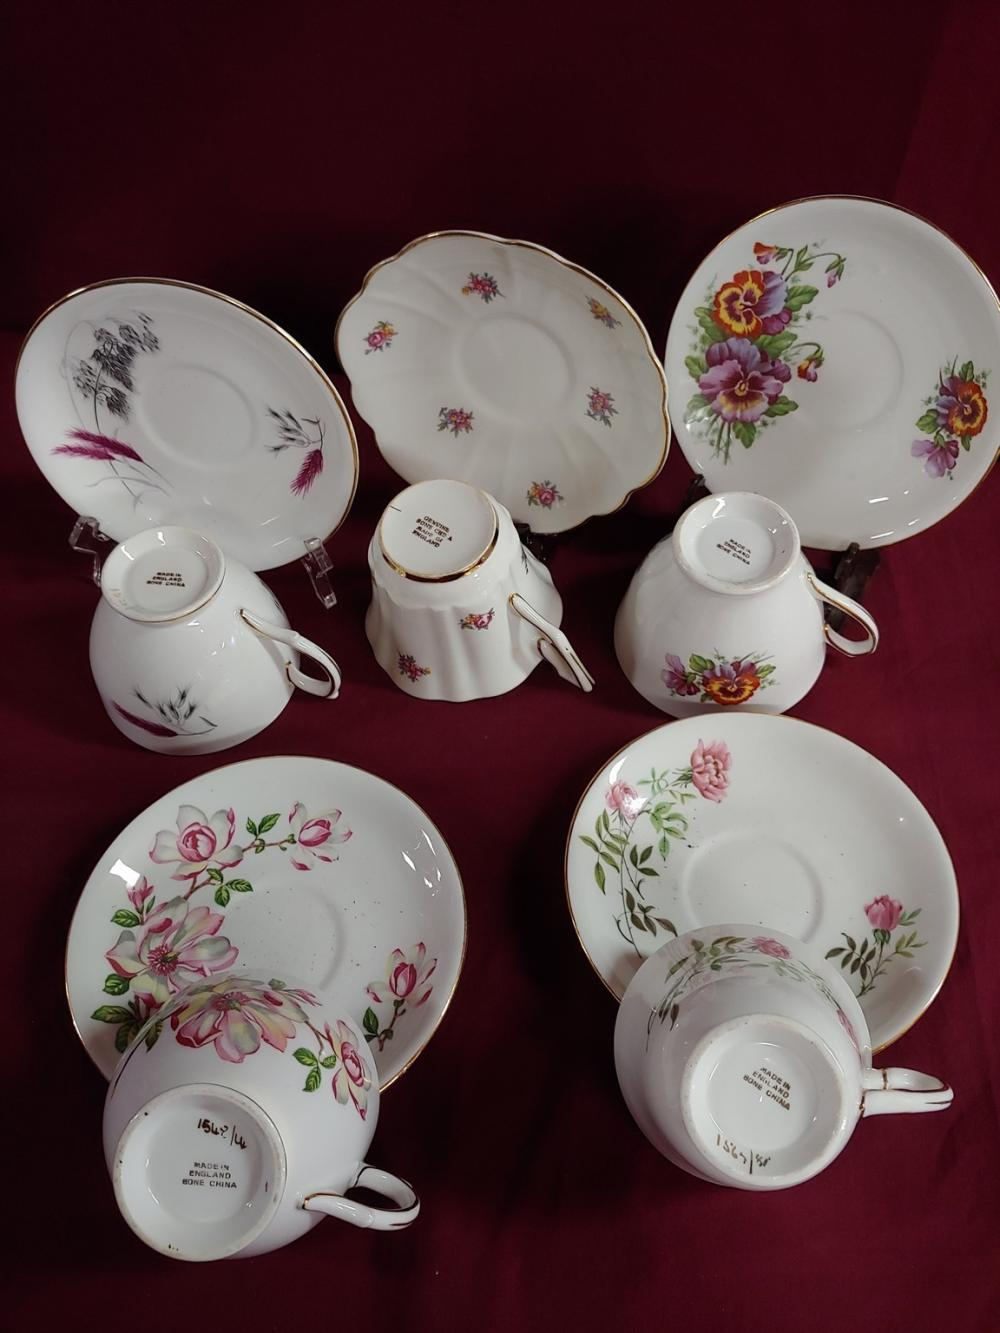 Collection of 15 Teacup and Saucer Sets